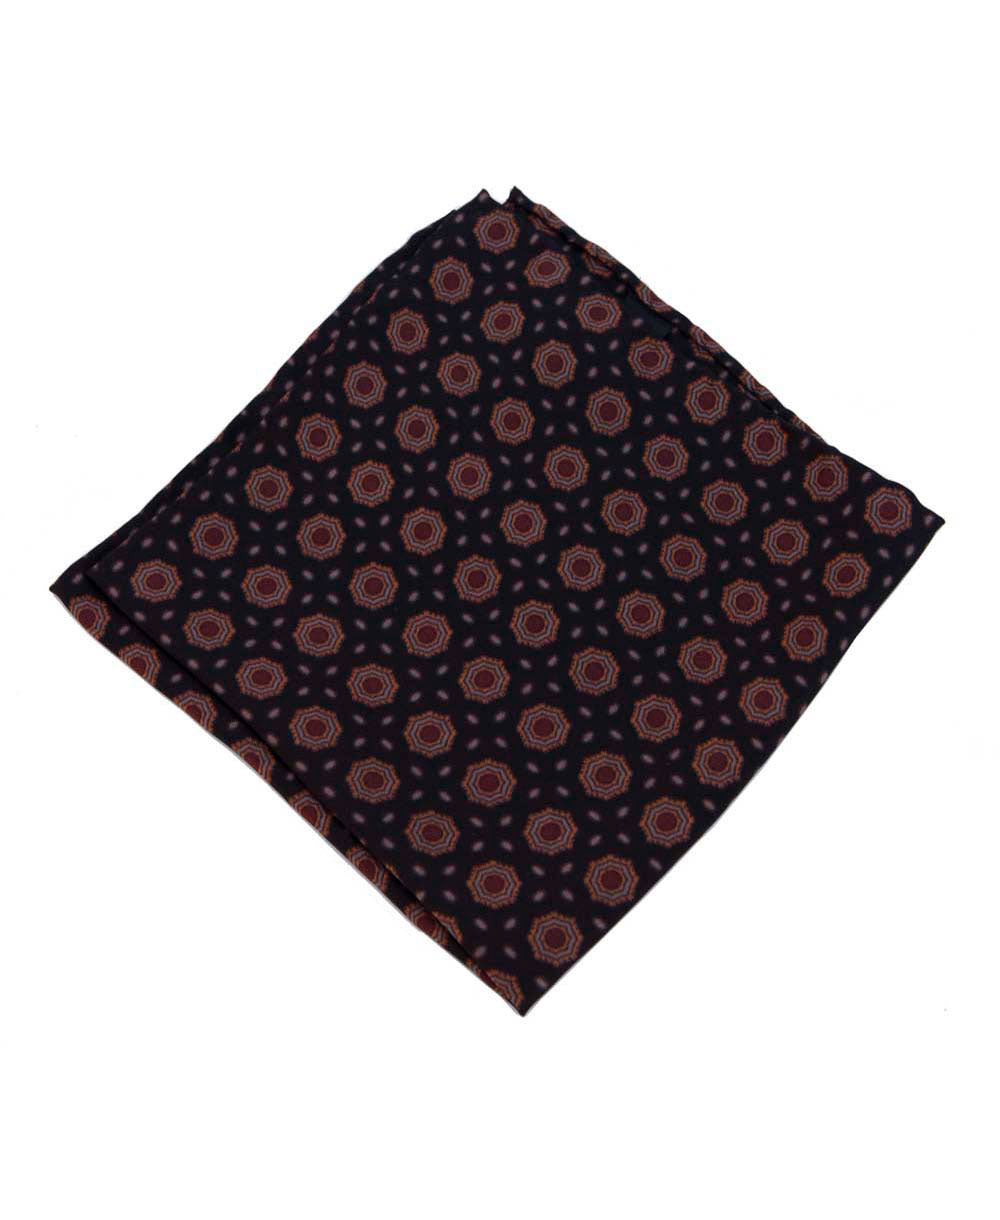 Revival Vintage Silk Pocket Square Black & Burgundy